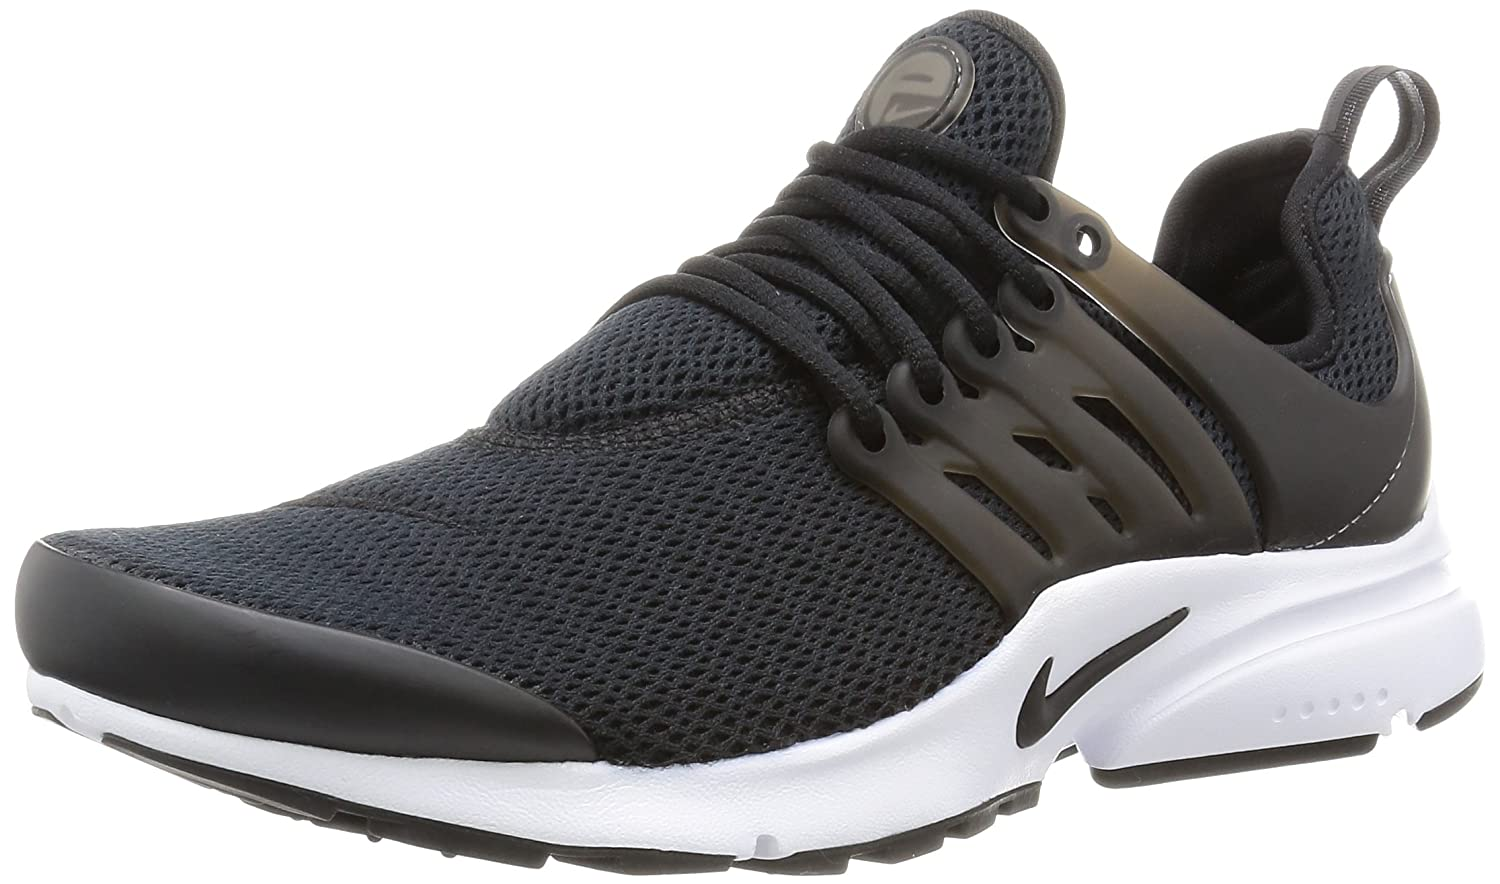 detailed look 3f58f 176ec Nike Women's Air Presto Running Shoe